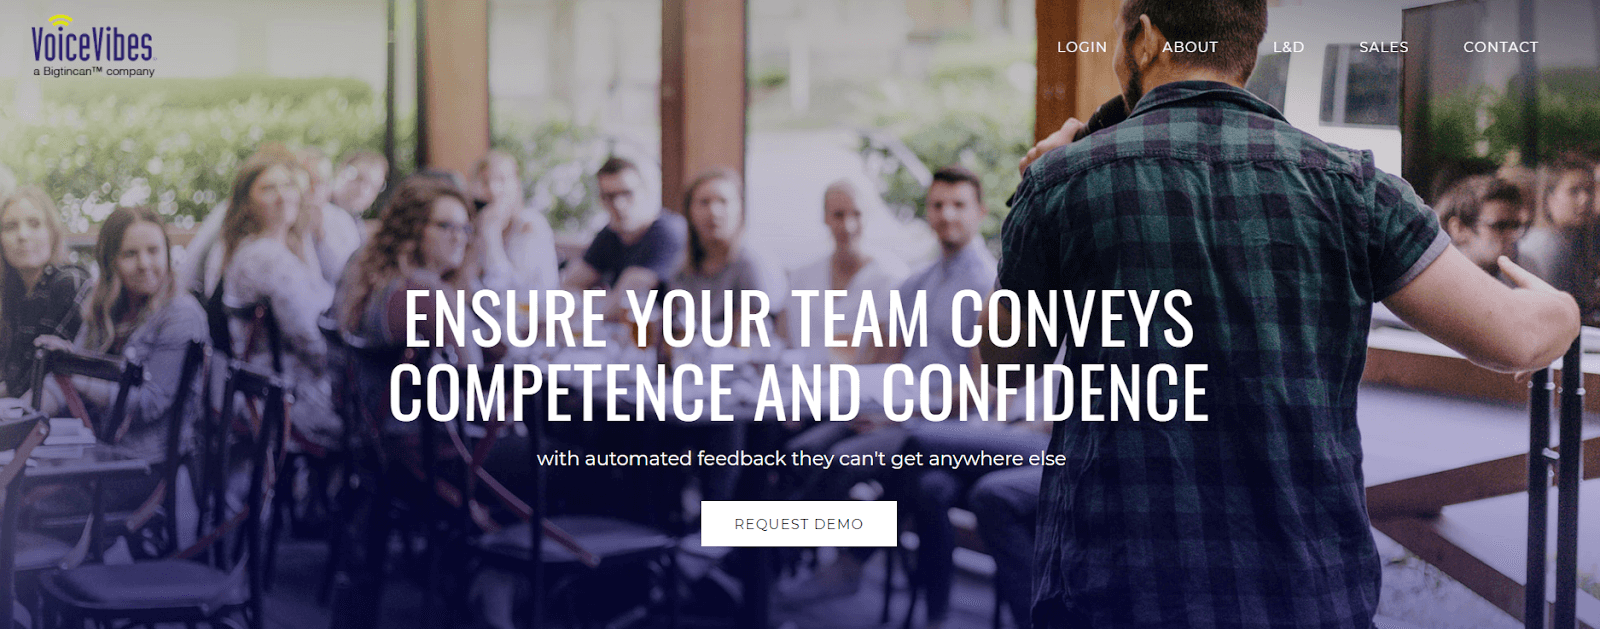 VocalVibes homepage: Ensure your team conveys competence and confidence